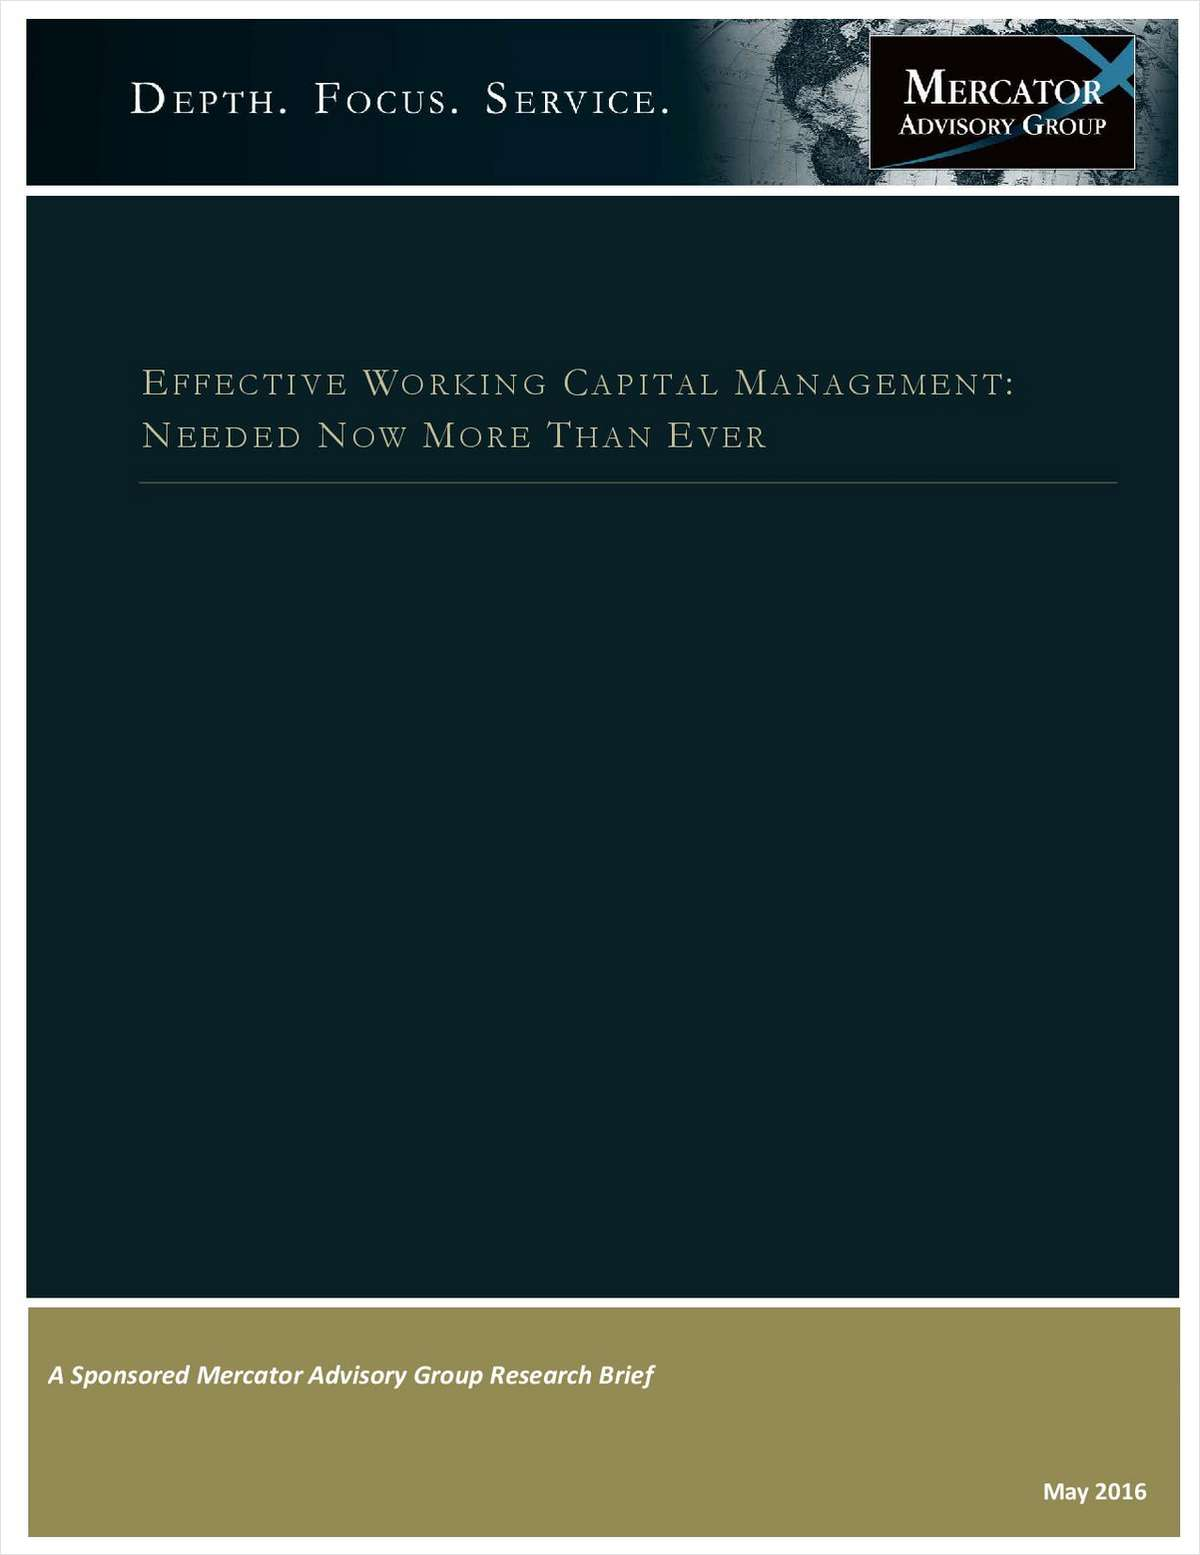 Effective Working Capital Management: Needed Now More Than Ever